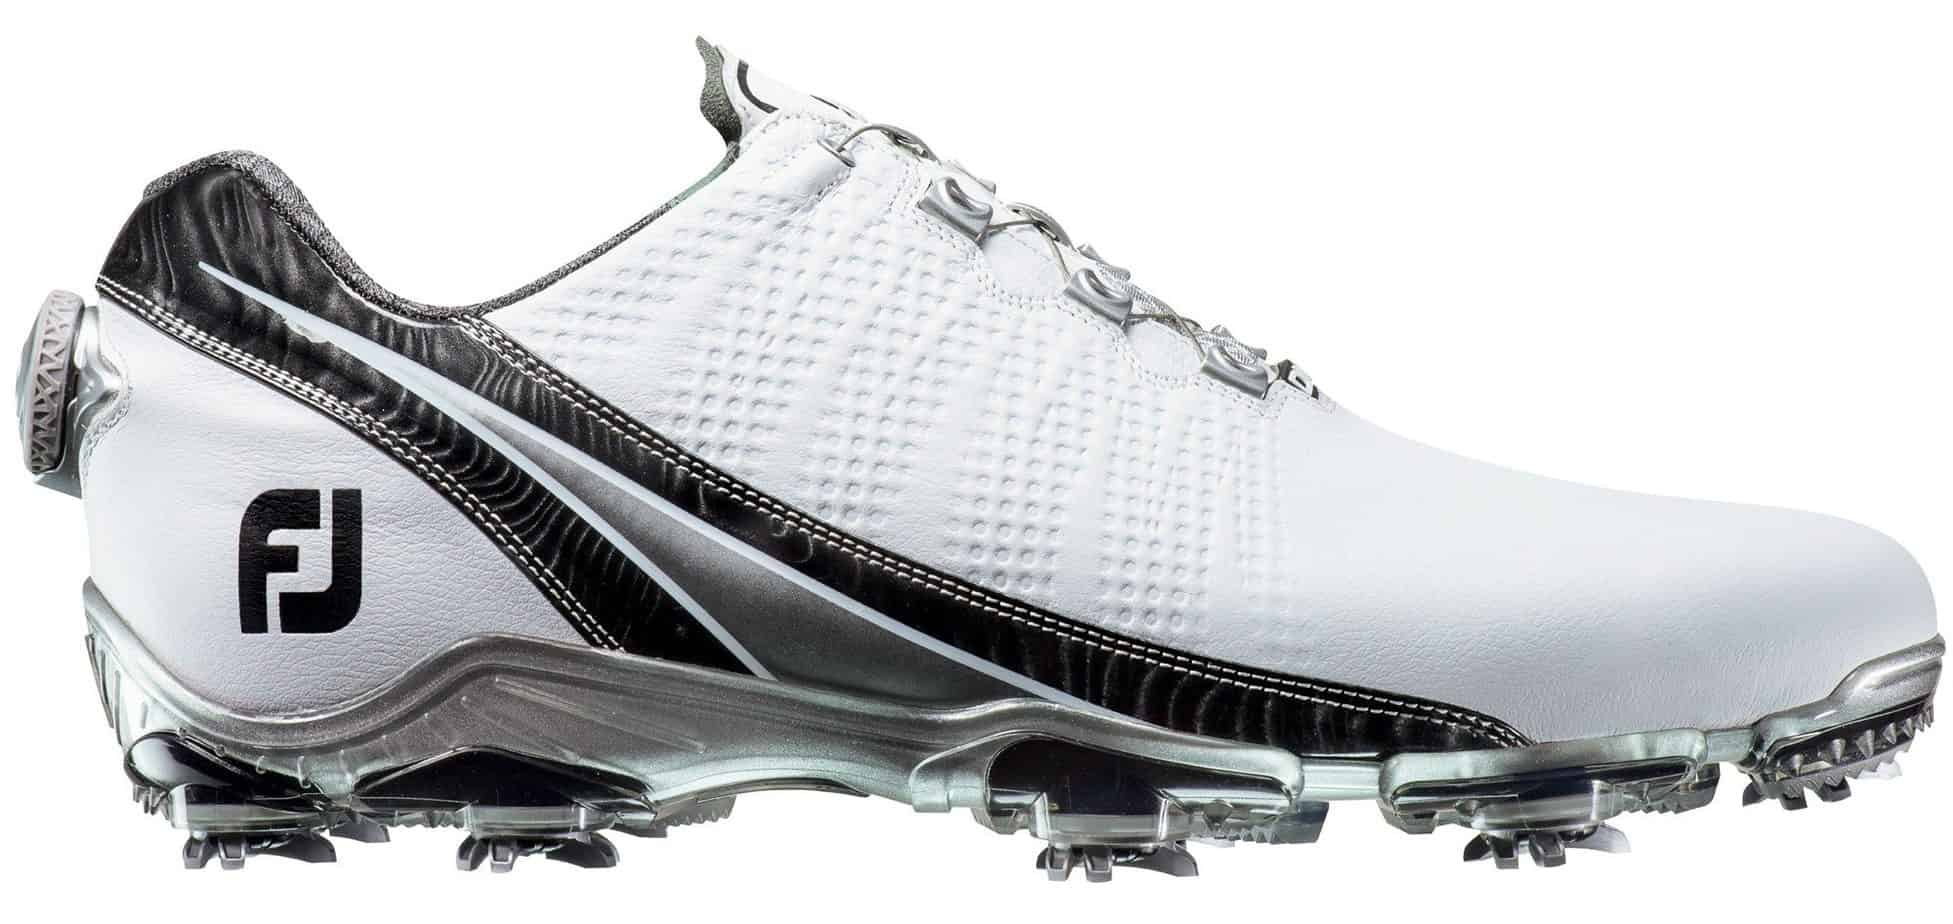 FootJoy D.N.A. BOA: Golf Shoe Review